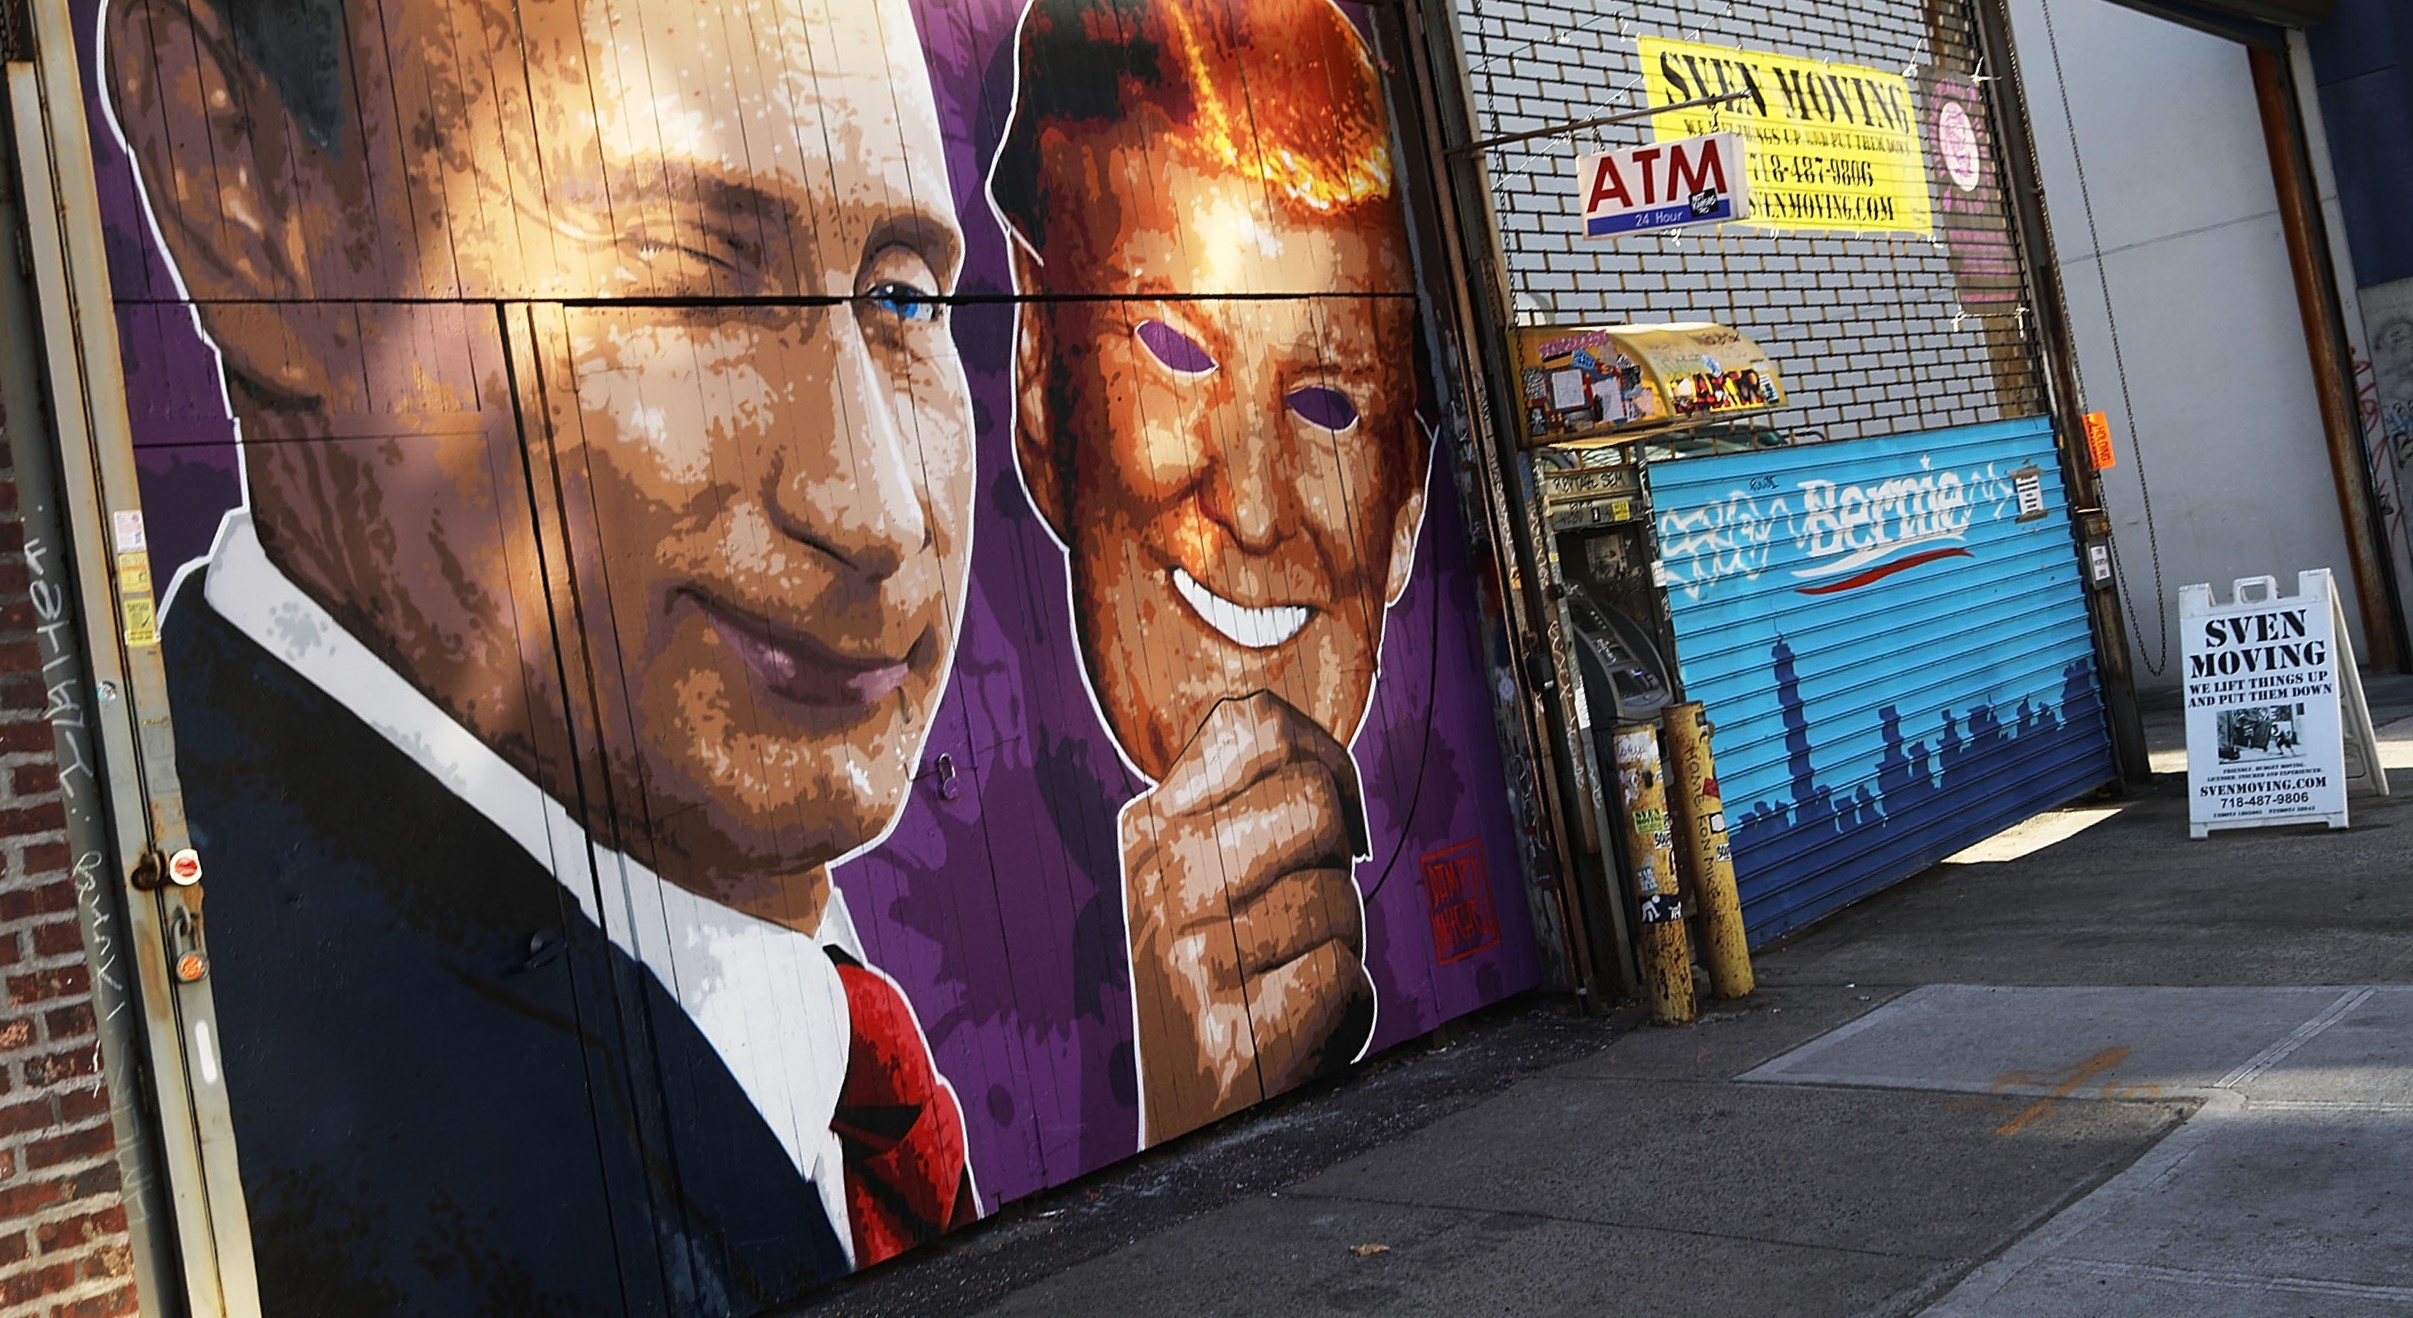 A mural depicting Vladimir Putin taking off a Donald Trump mask, New York, 2017 (Photo: Getty Images/Spencer Platt)